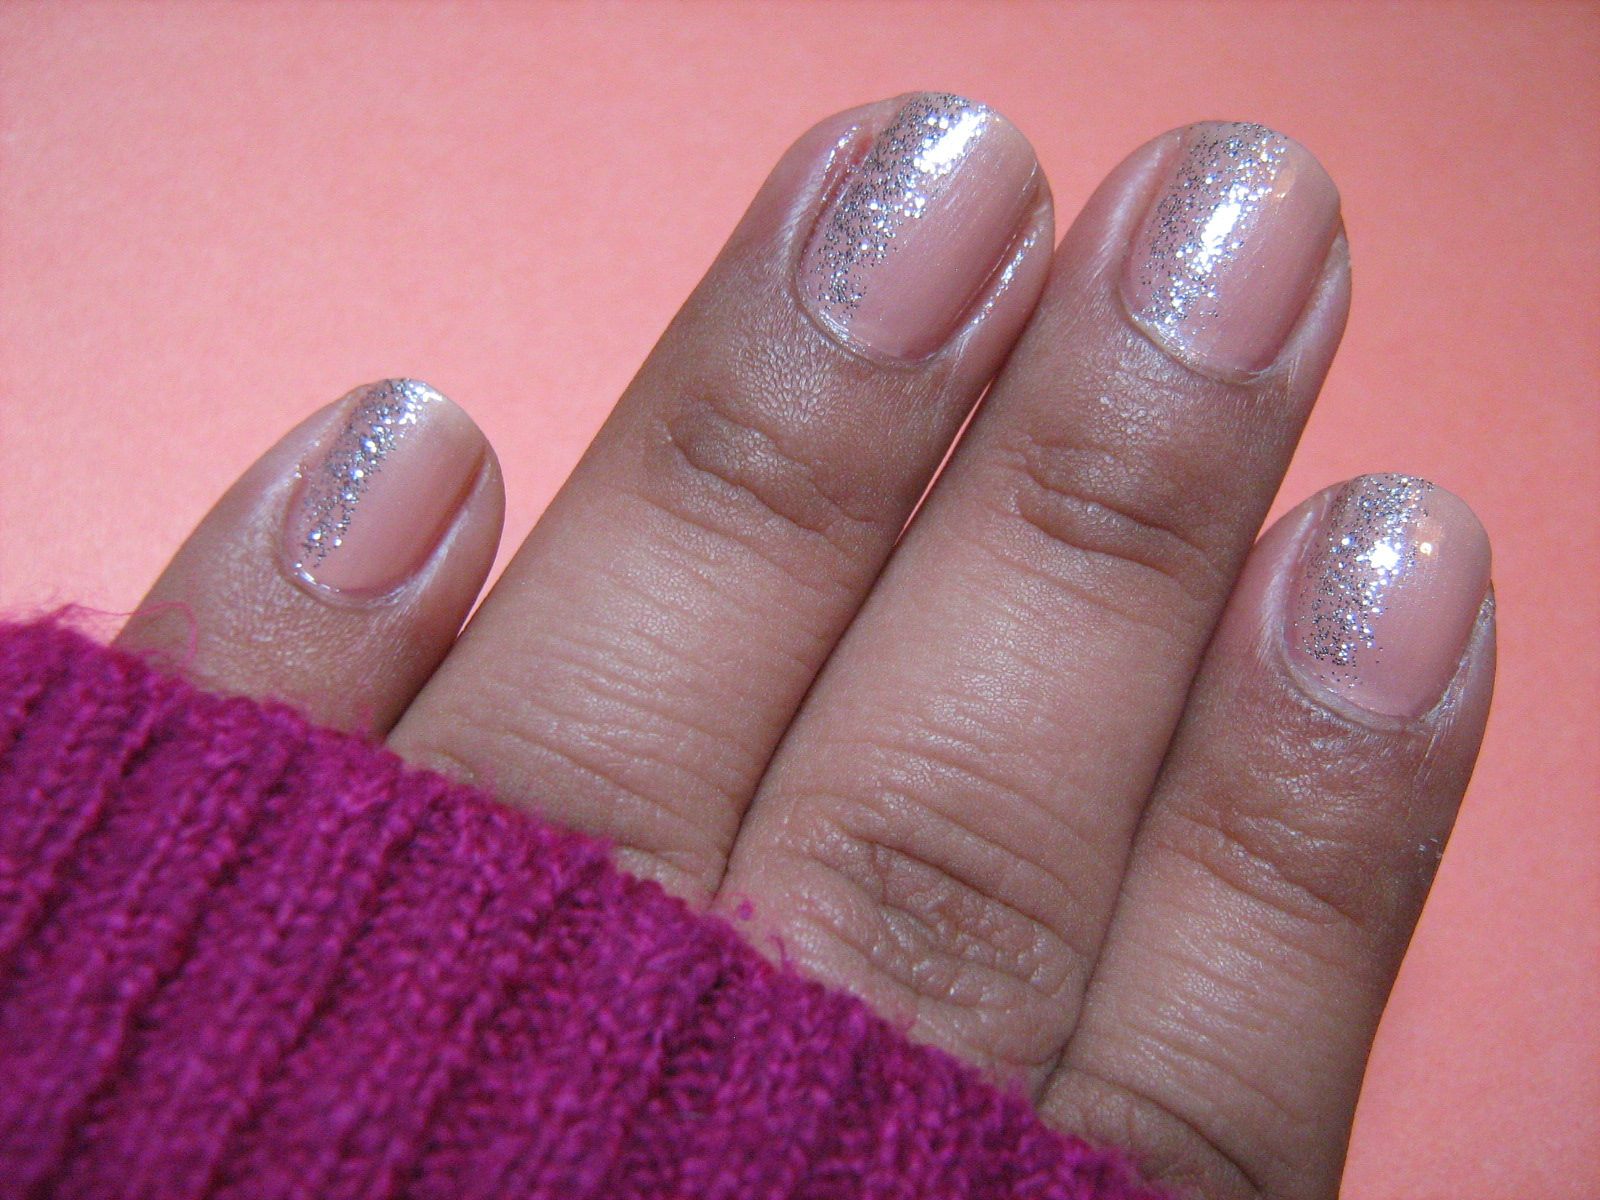 Nude and Glitter Manicure